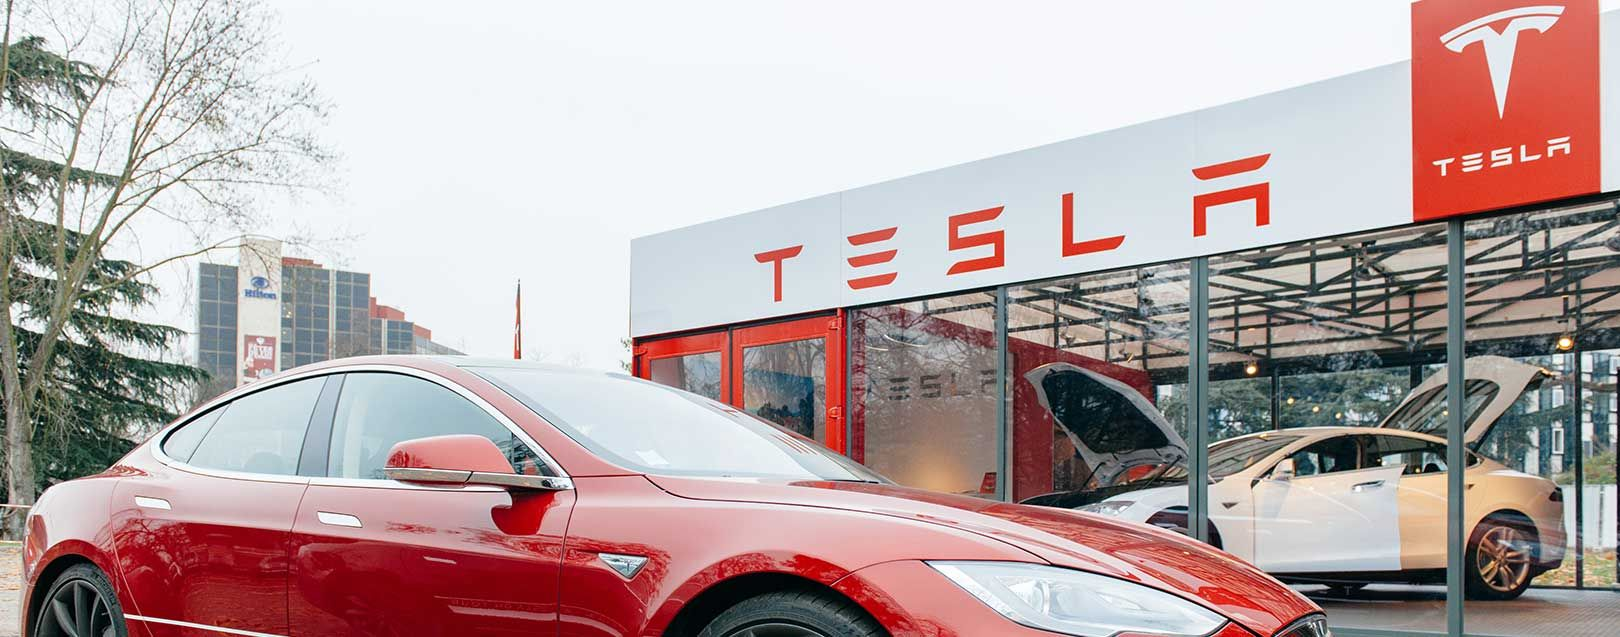 Imports and exports image by Foreign trade Tesla car